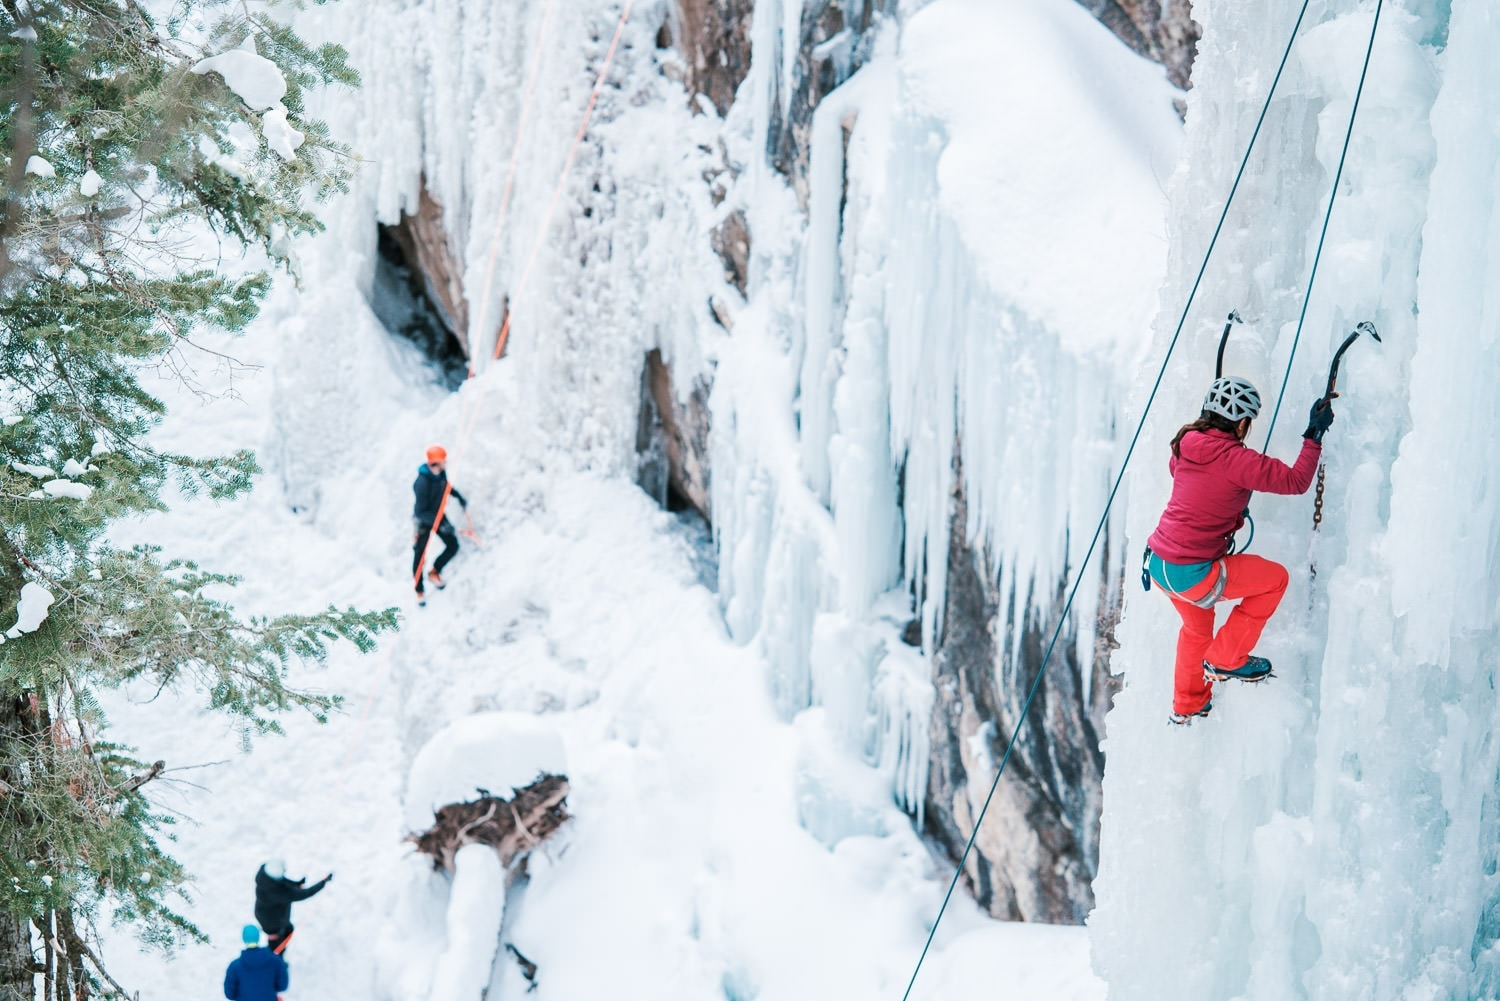 ice climbers in the Ouray Ice Park in Colorado